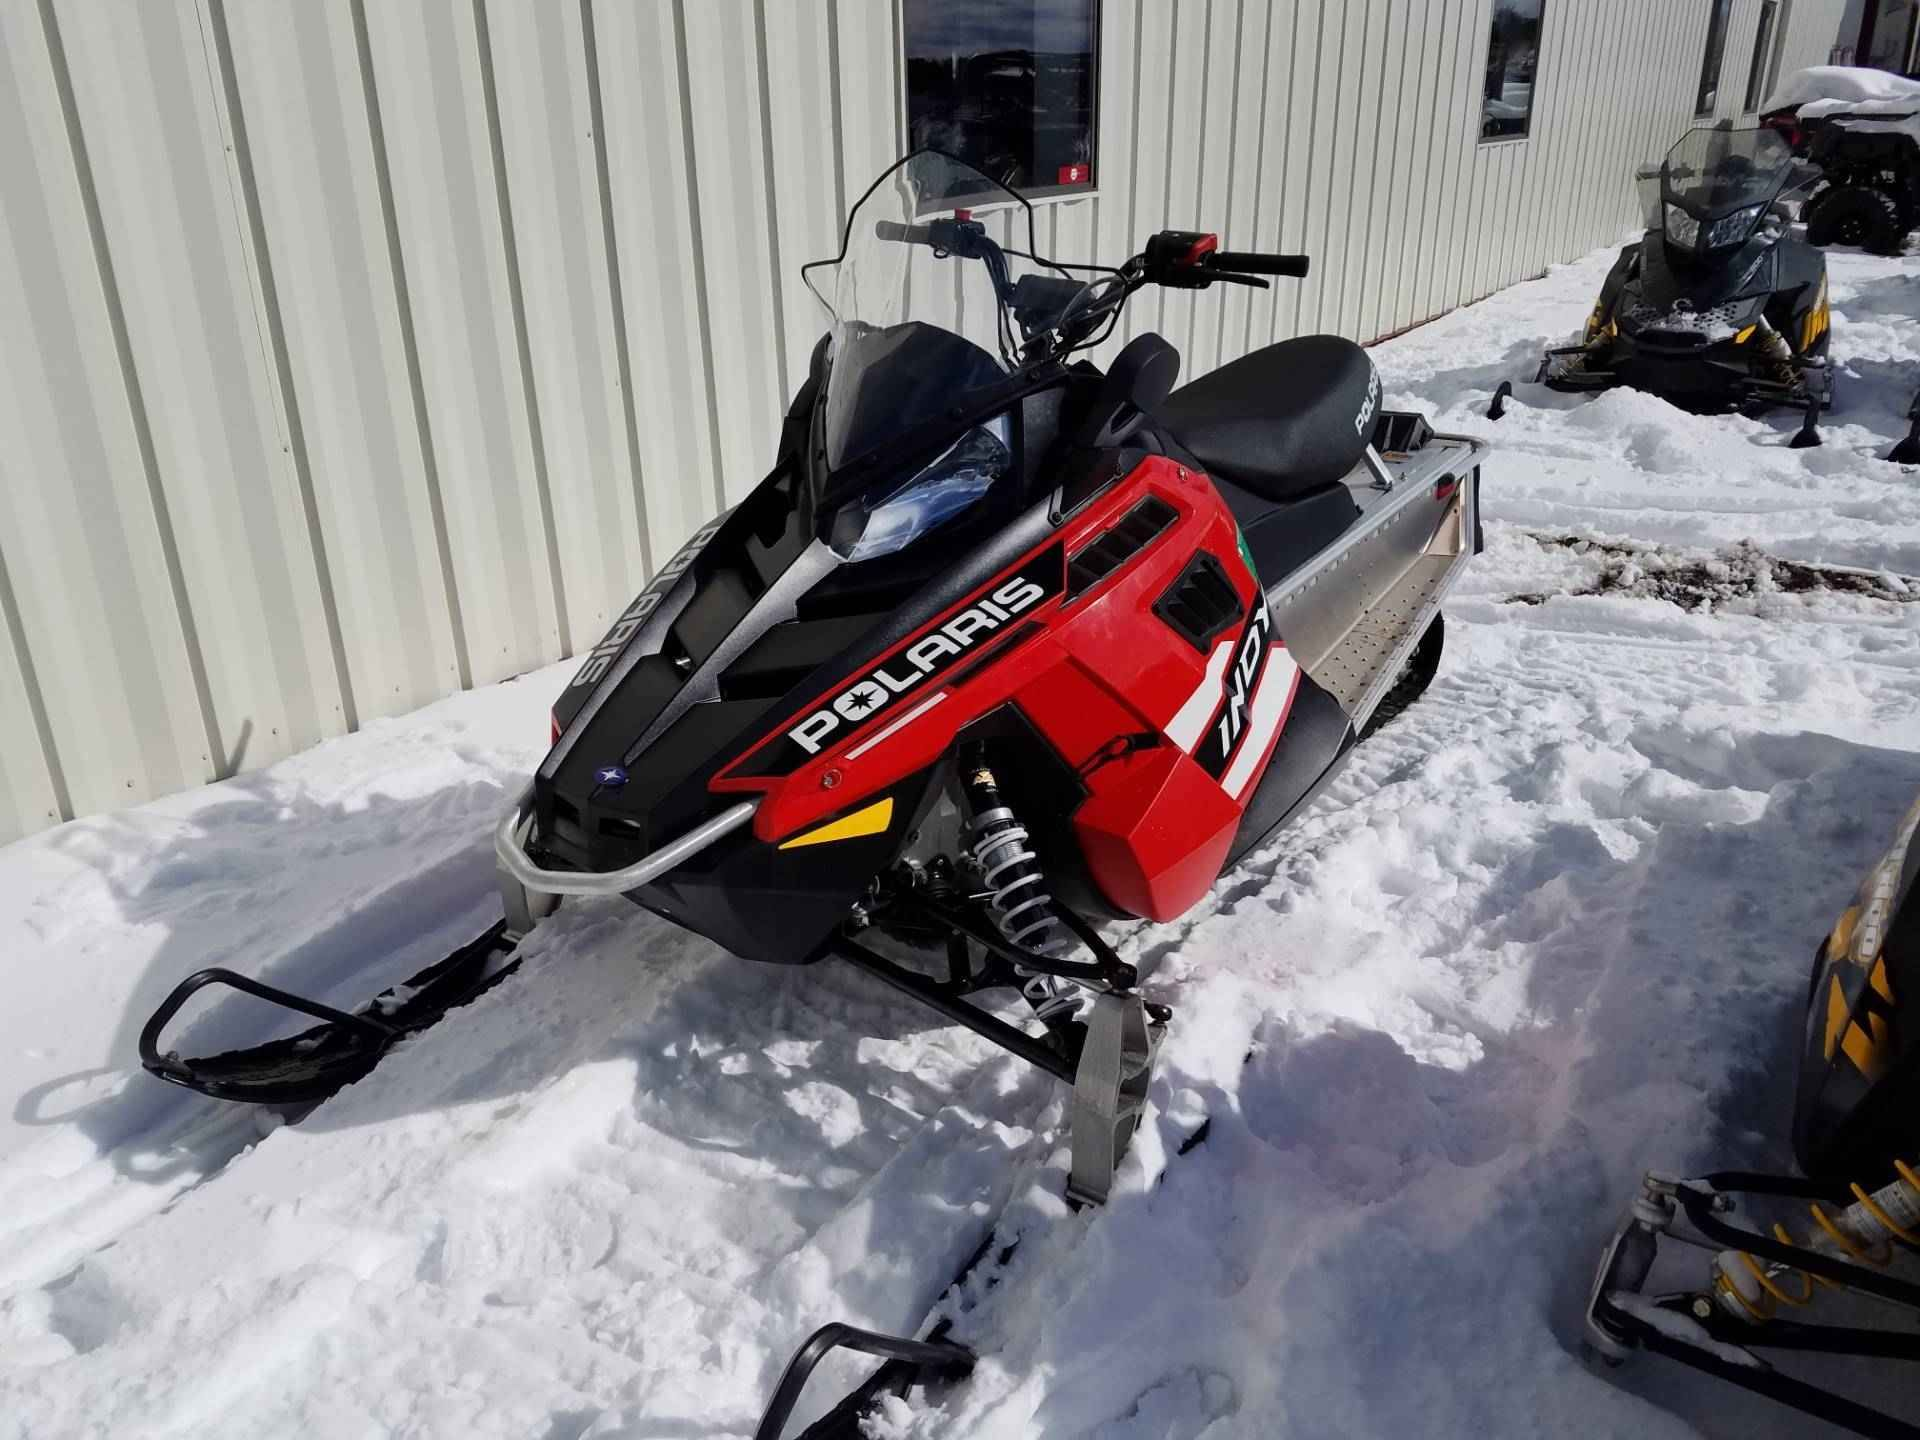 Used 2016 Polaris 550 Indy Snowmobile For Sale In Wisconsin Wi Indy Performance Better Than Ever Indy Is The Model Name That Snowmobile Indie Trail Riding